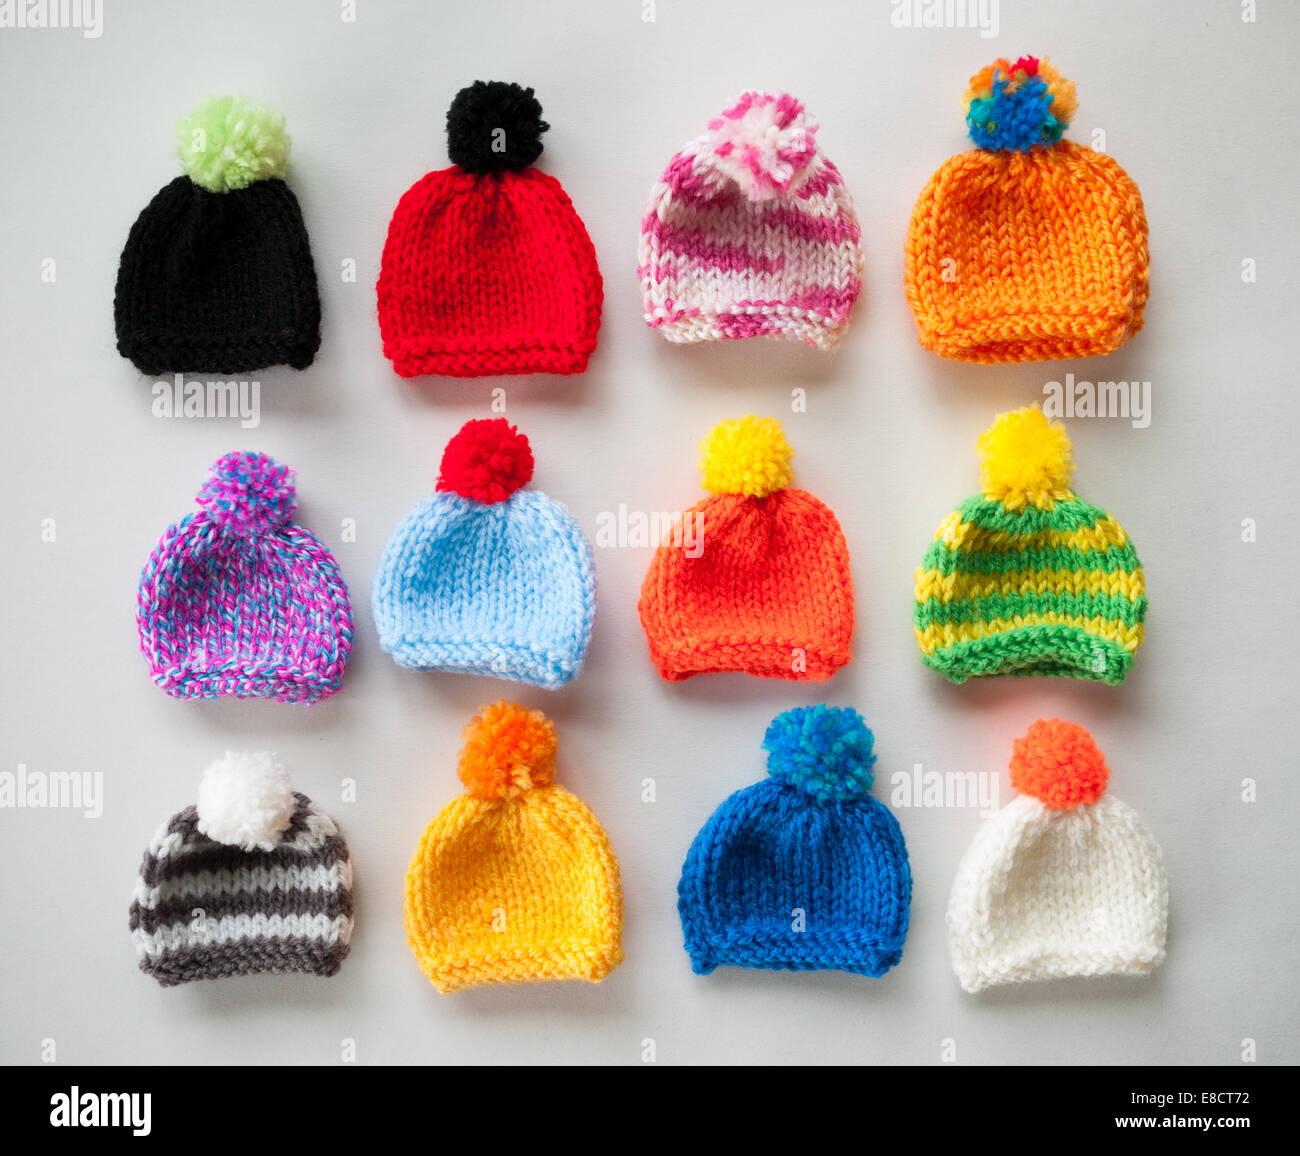 Miniature knitted hats - Stock Image